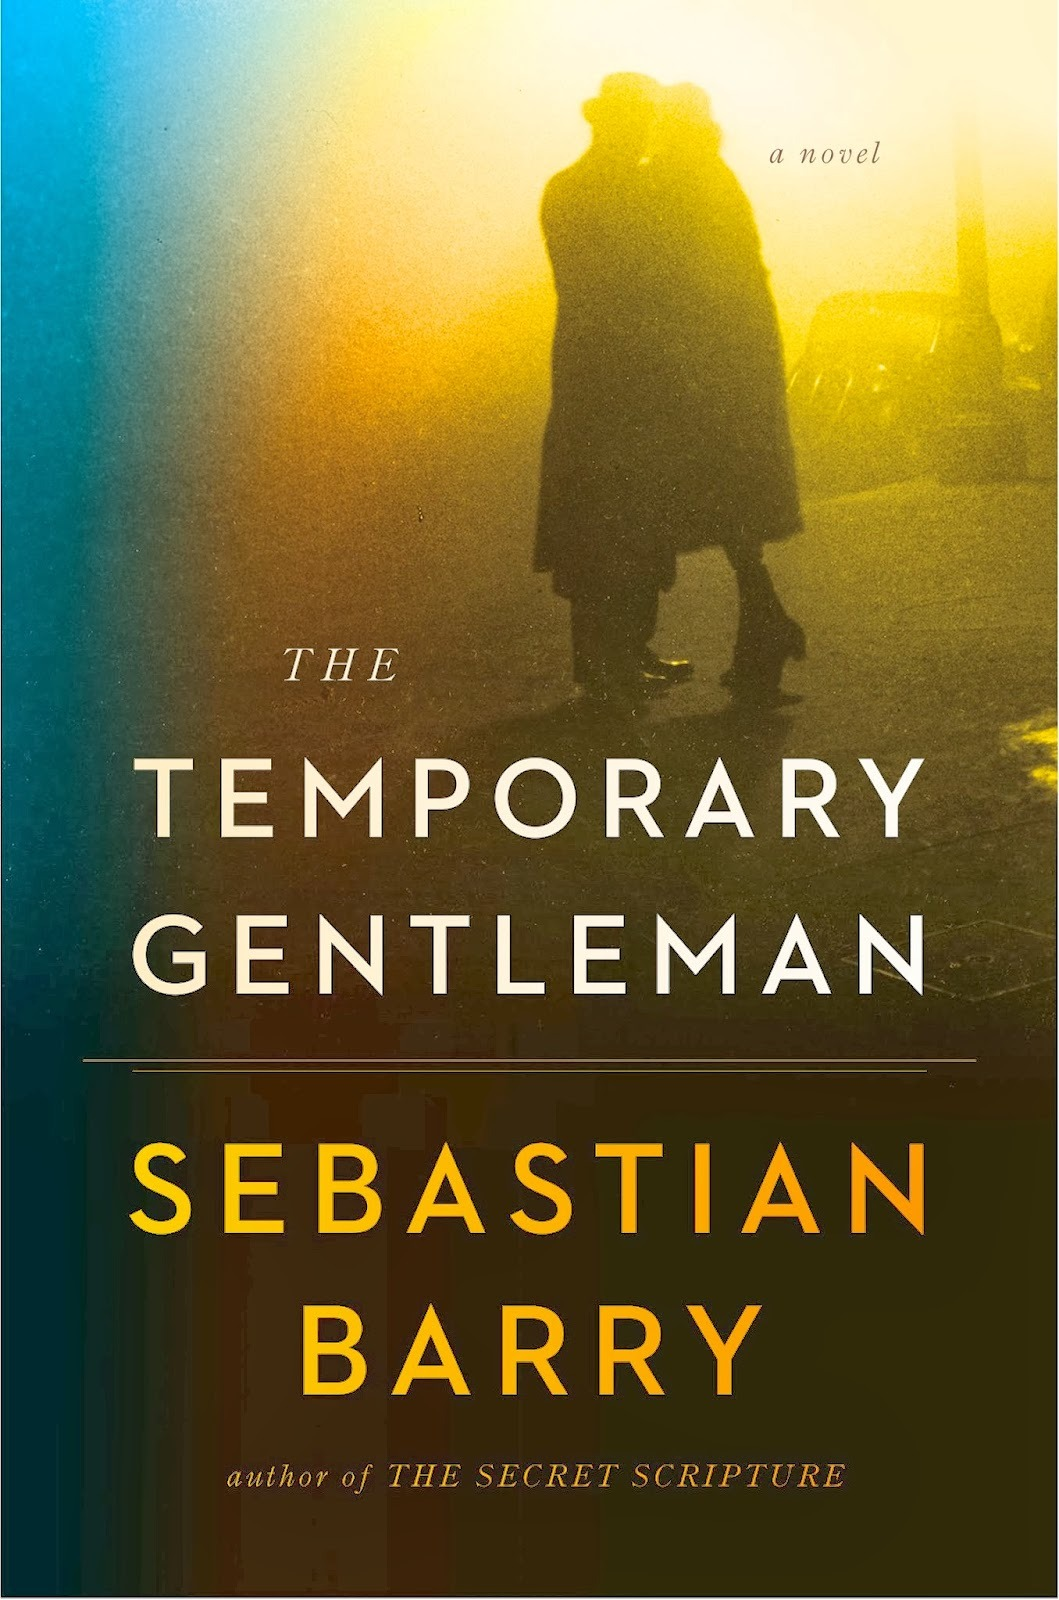 In his novels and plays,Sebastian Barryoften focuses onsegment of Irish society that tends to get ignored in literature — the Irishmen who fought for the British Empirein the first and second World Wars. AtFull-Stop,John Cussen&n